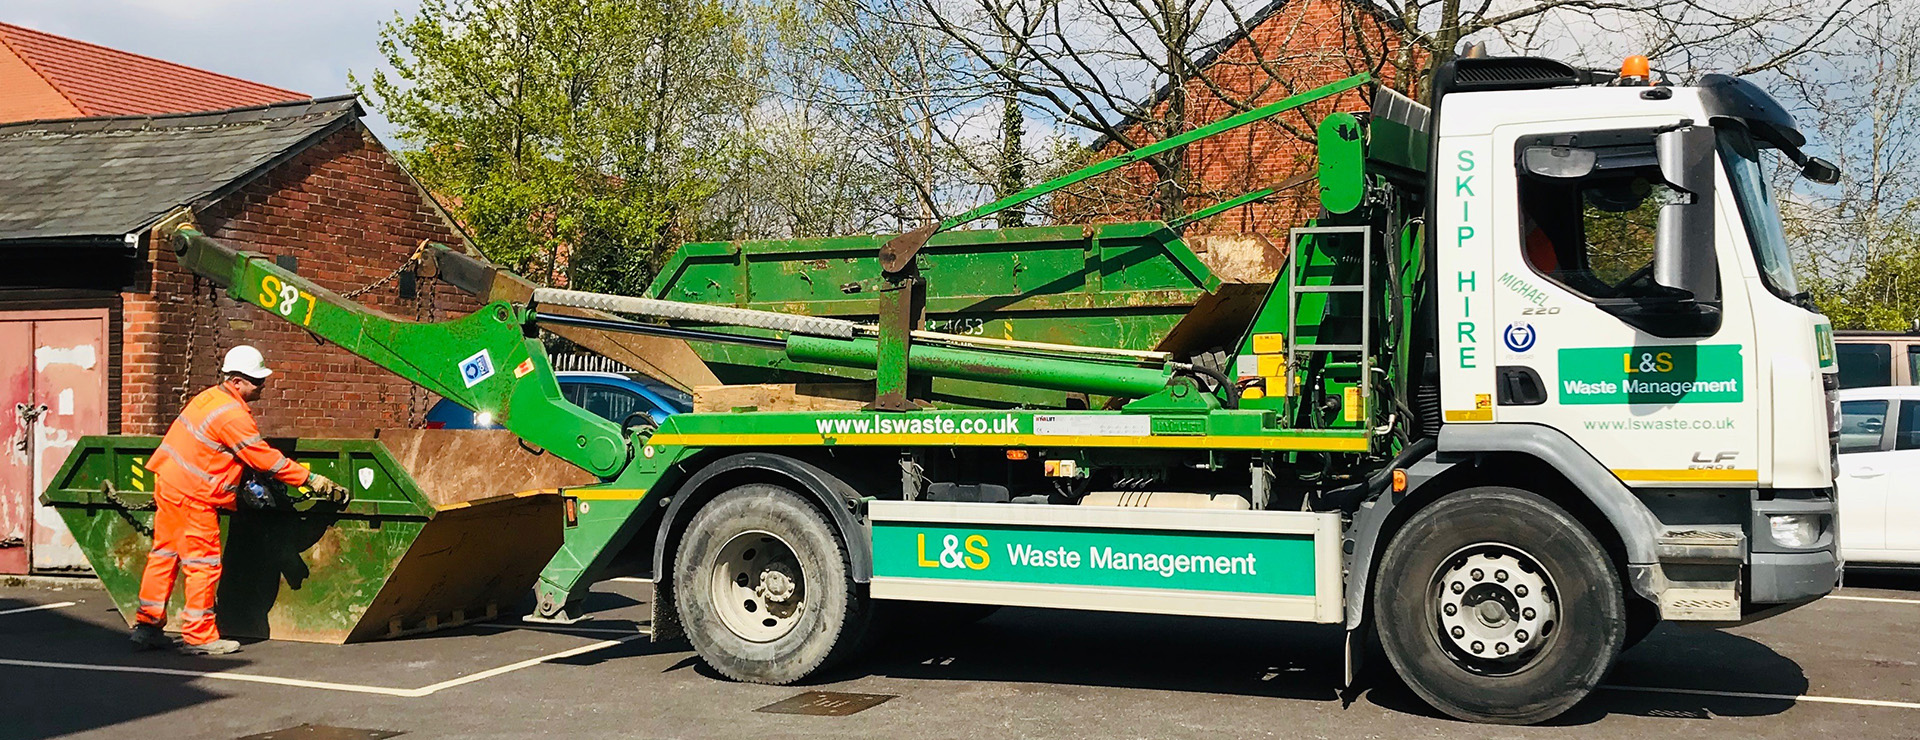 L&S Waste - Charity In the Community - L&S helps the Phoenix take flight